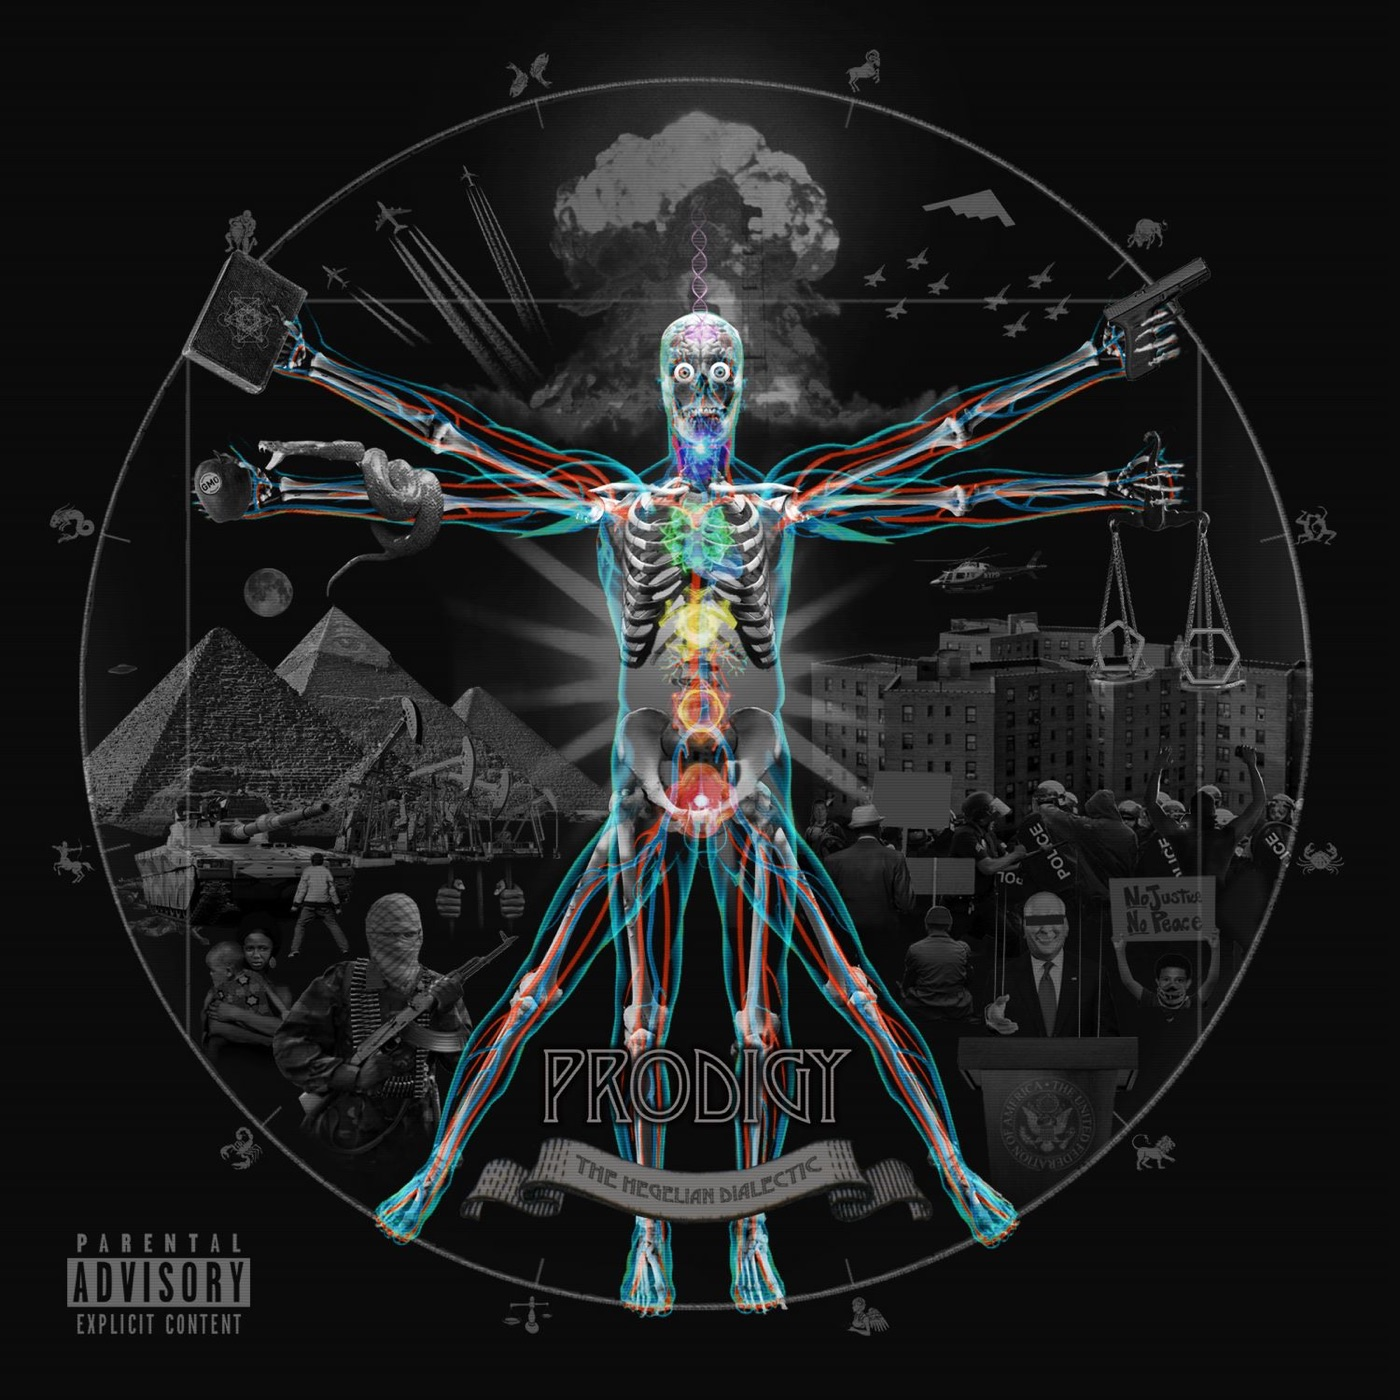 Prodigy - Hegelian Dialectic (The Book of Revelation) Cover